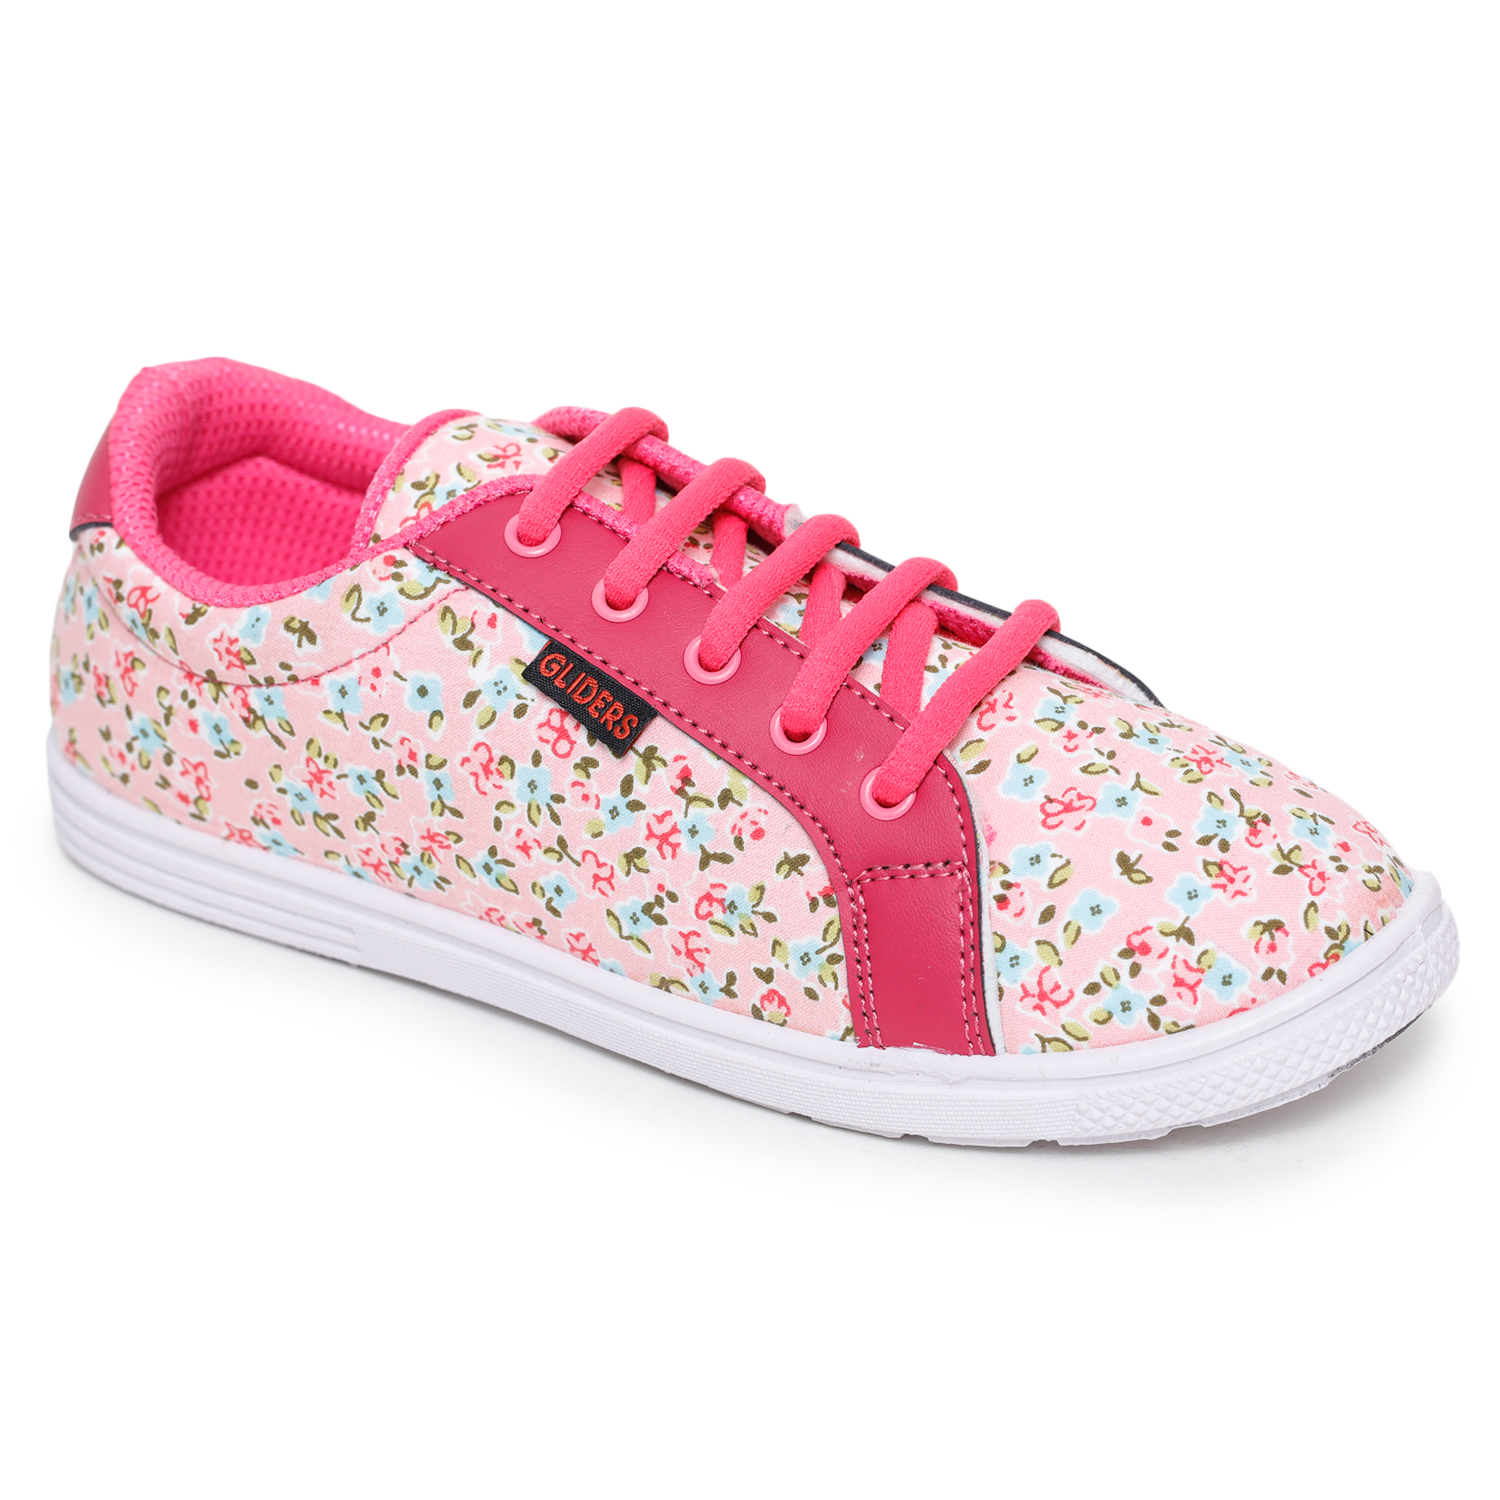 Liberty   Liberty Gliders Pink Casual Lace-ups 8133-39E_Pink For - Women